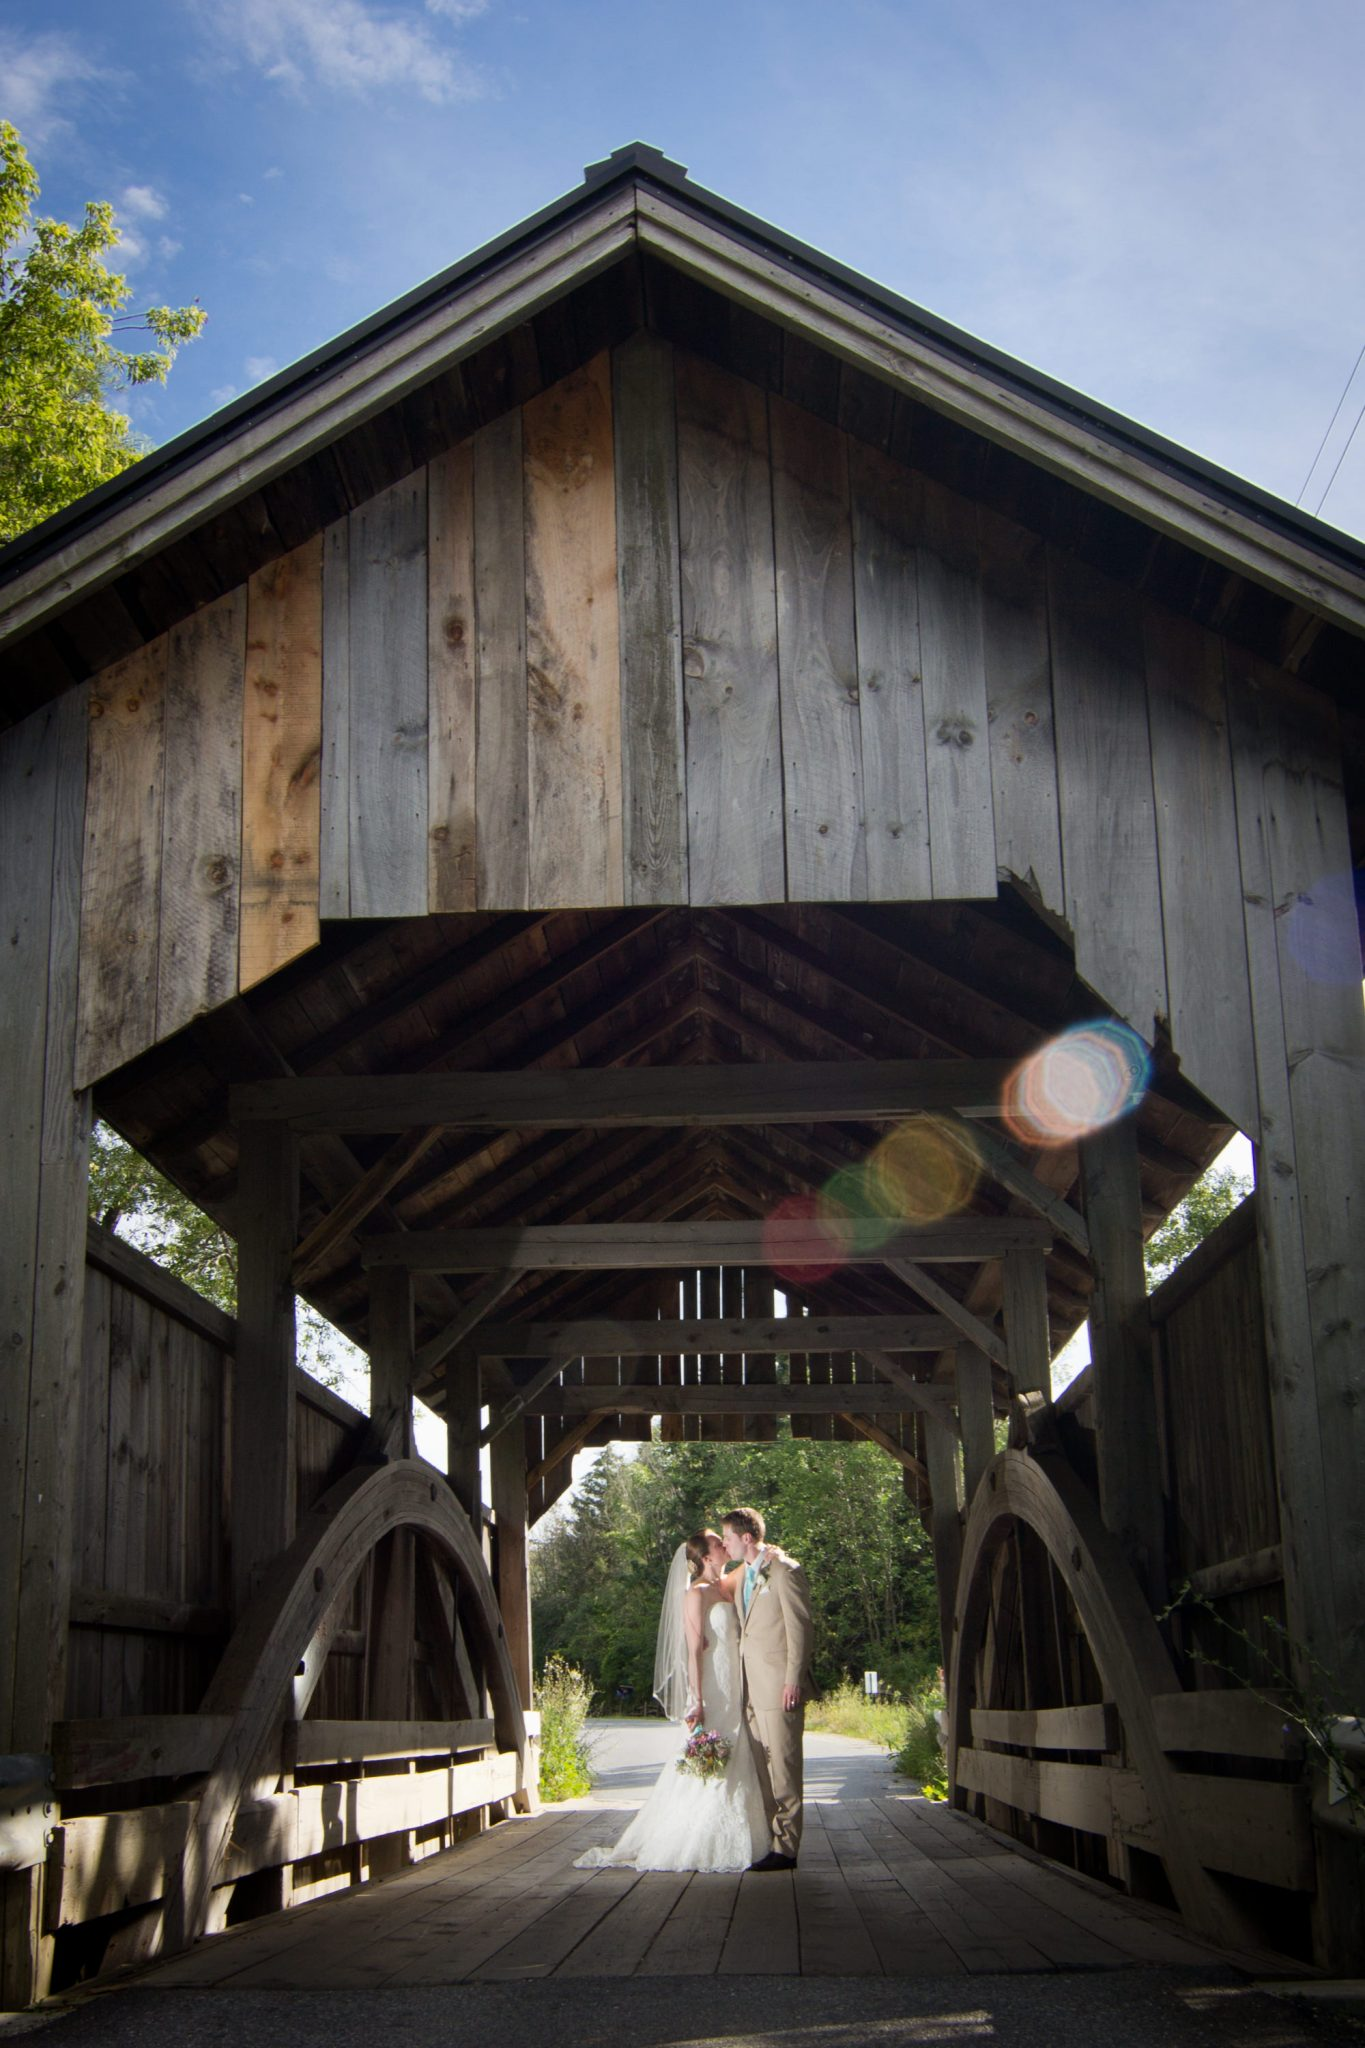 Covered bridge and wedding couple at Lake Champlain in Vermont